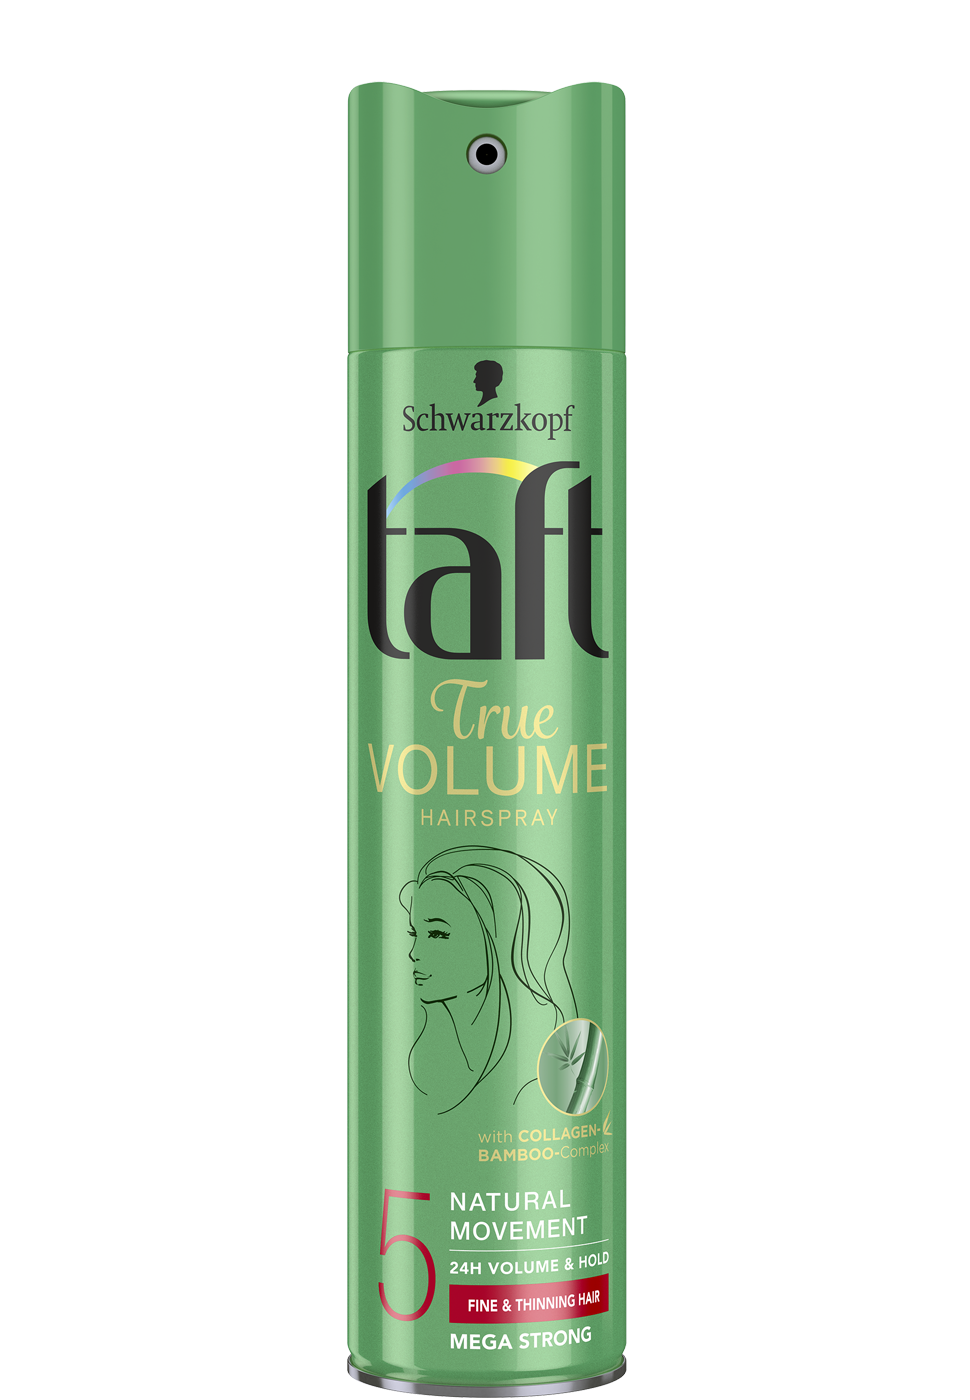 Taft-true-volume-lak-mega-strong-970x1400